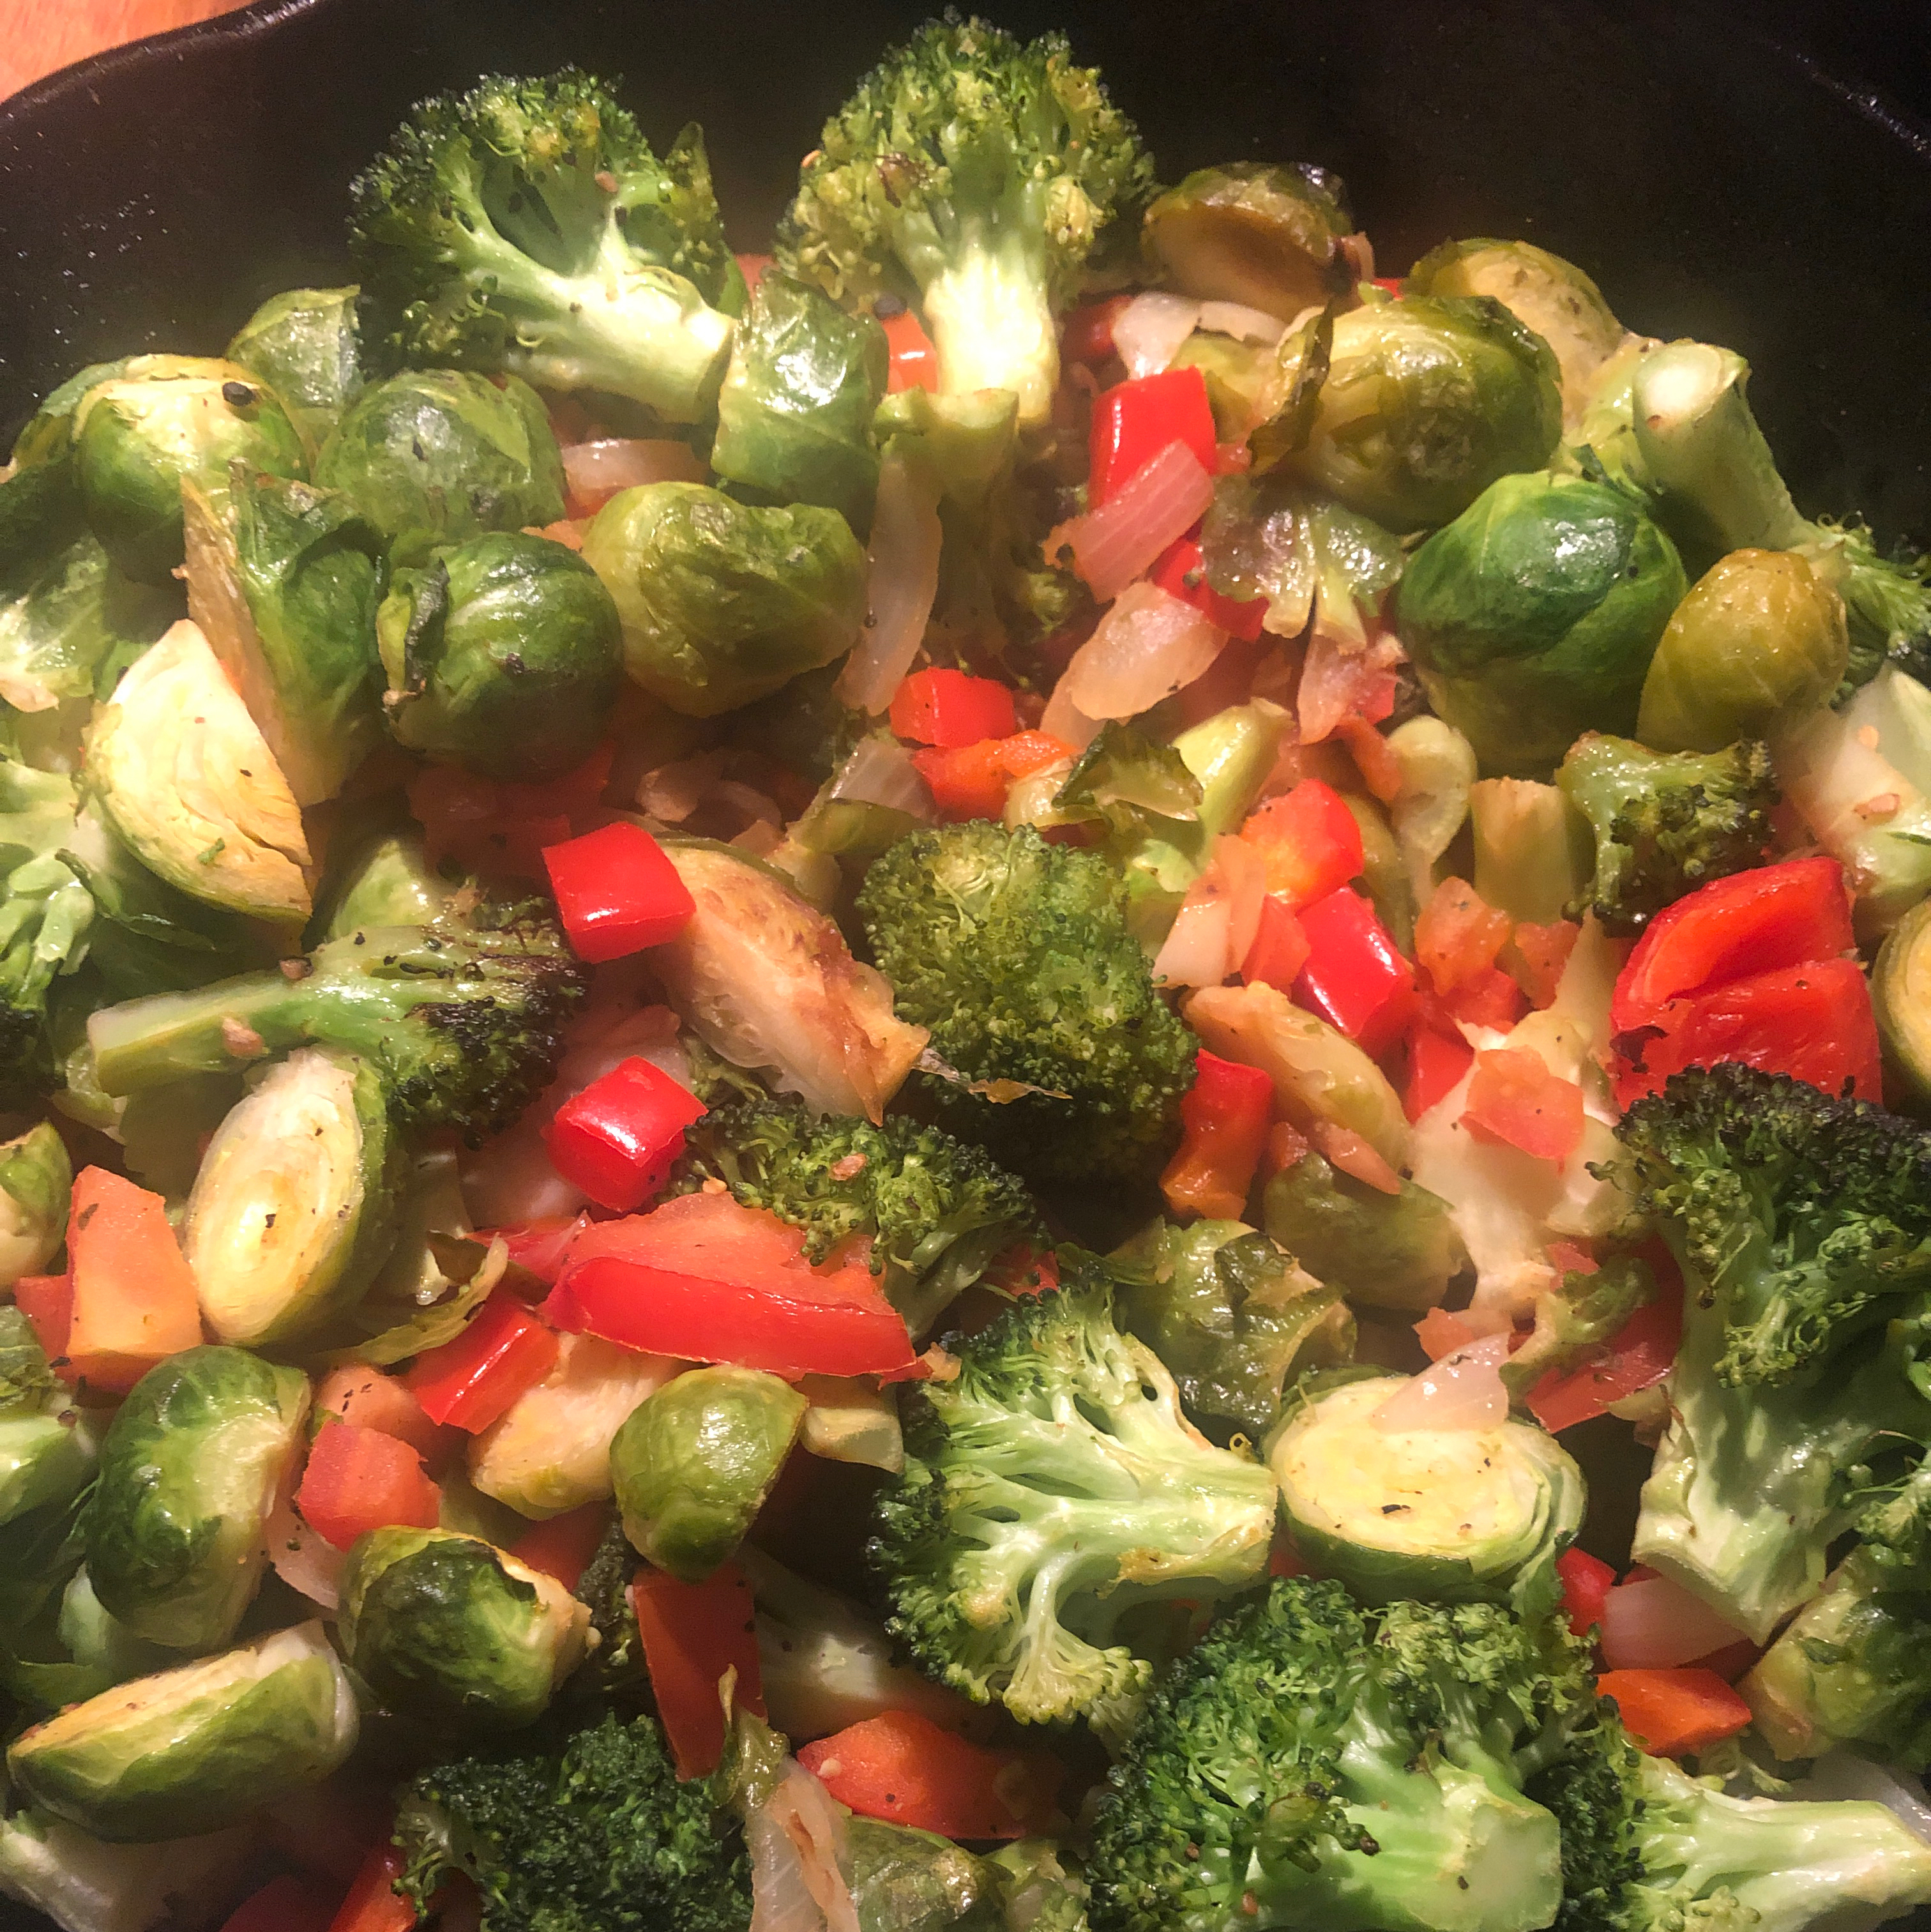 Broccoli and Brussels Sprout Delight blendabenda